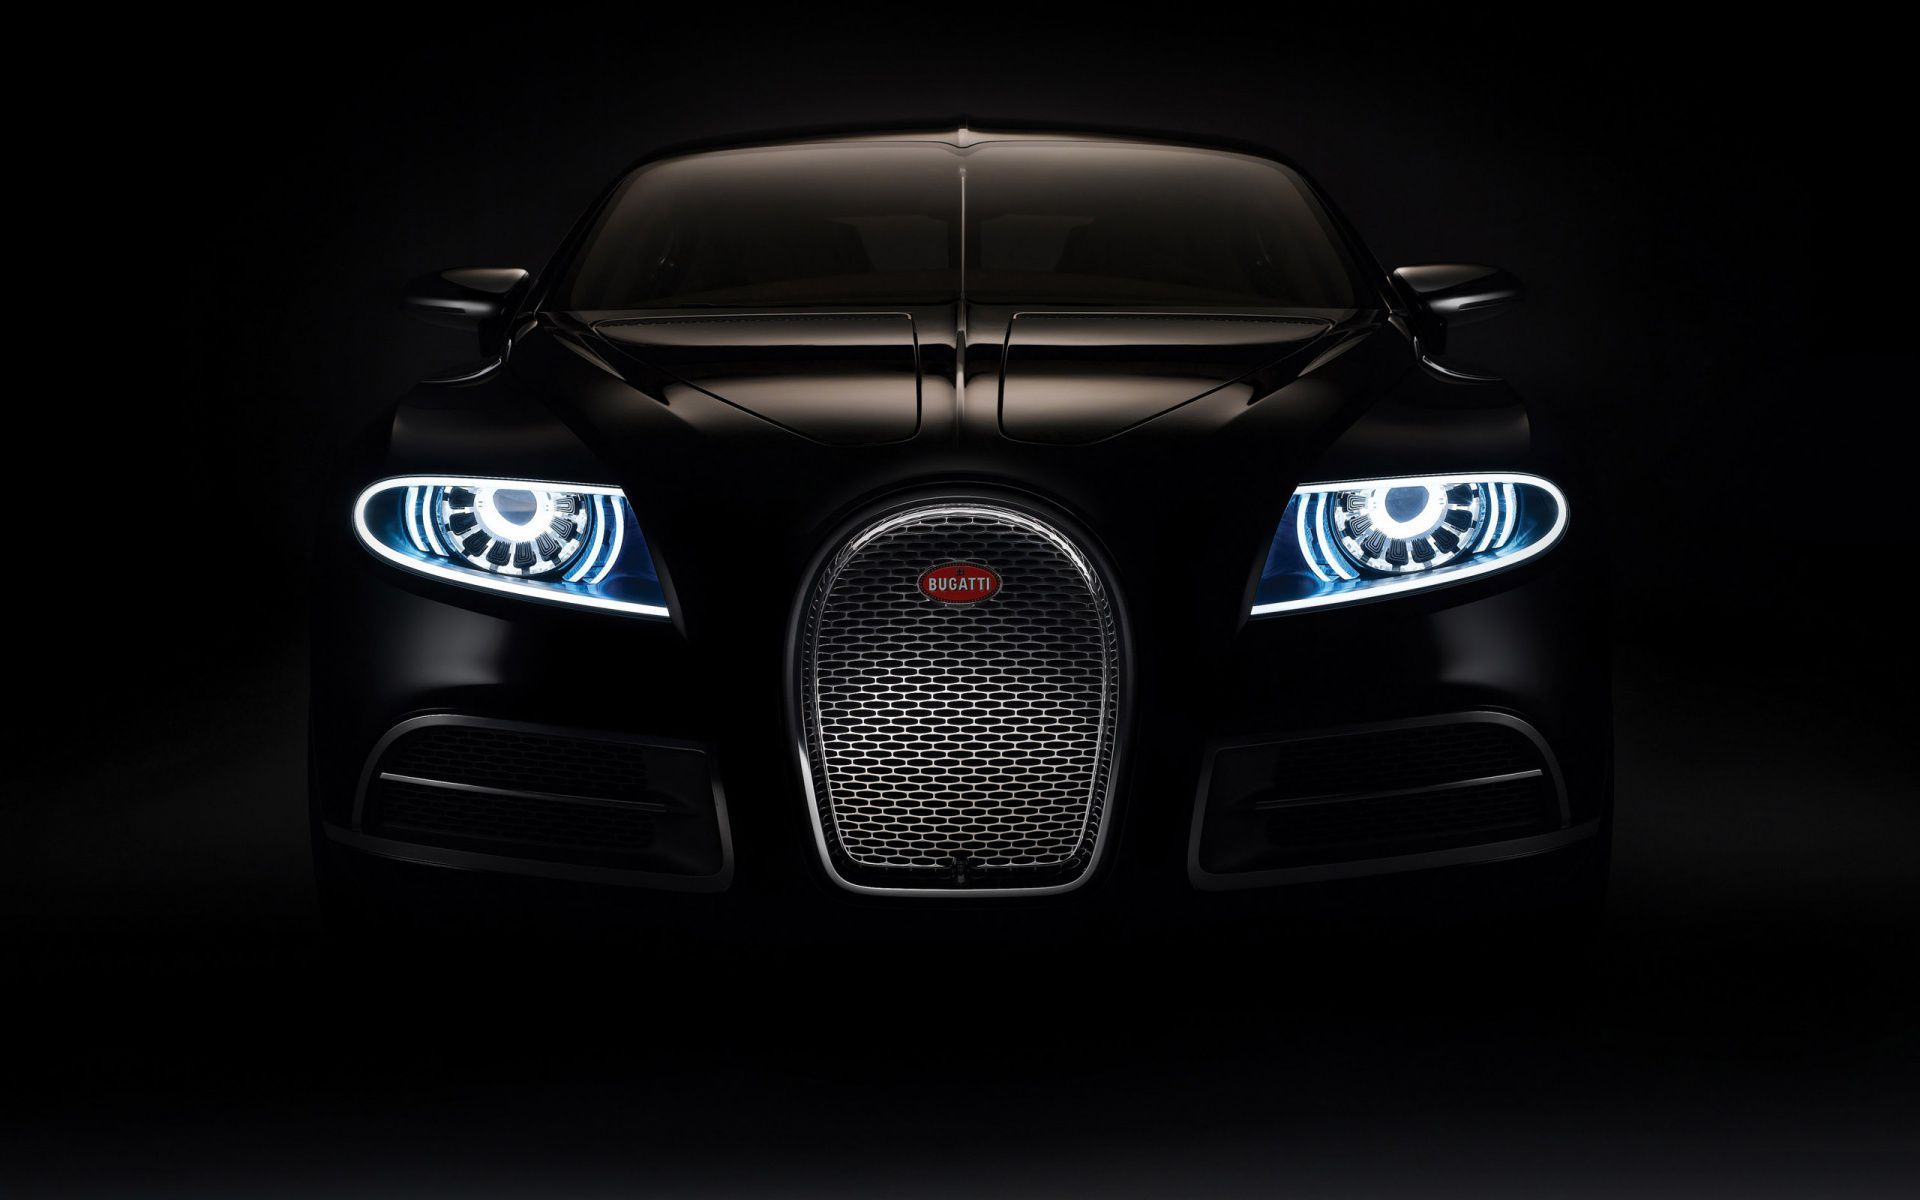 8c83e97db13047dee35c1b2fde967a33 Cool Bugatti Veyron Price In Uae 2015 Cars Trend